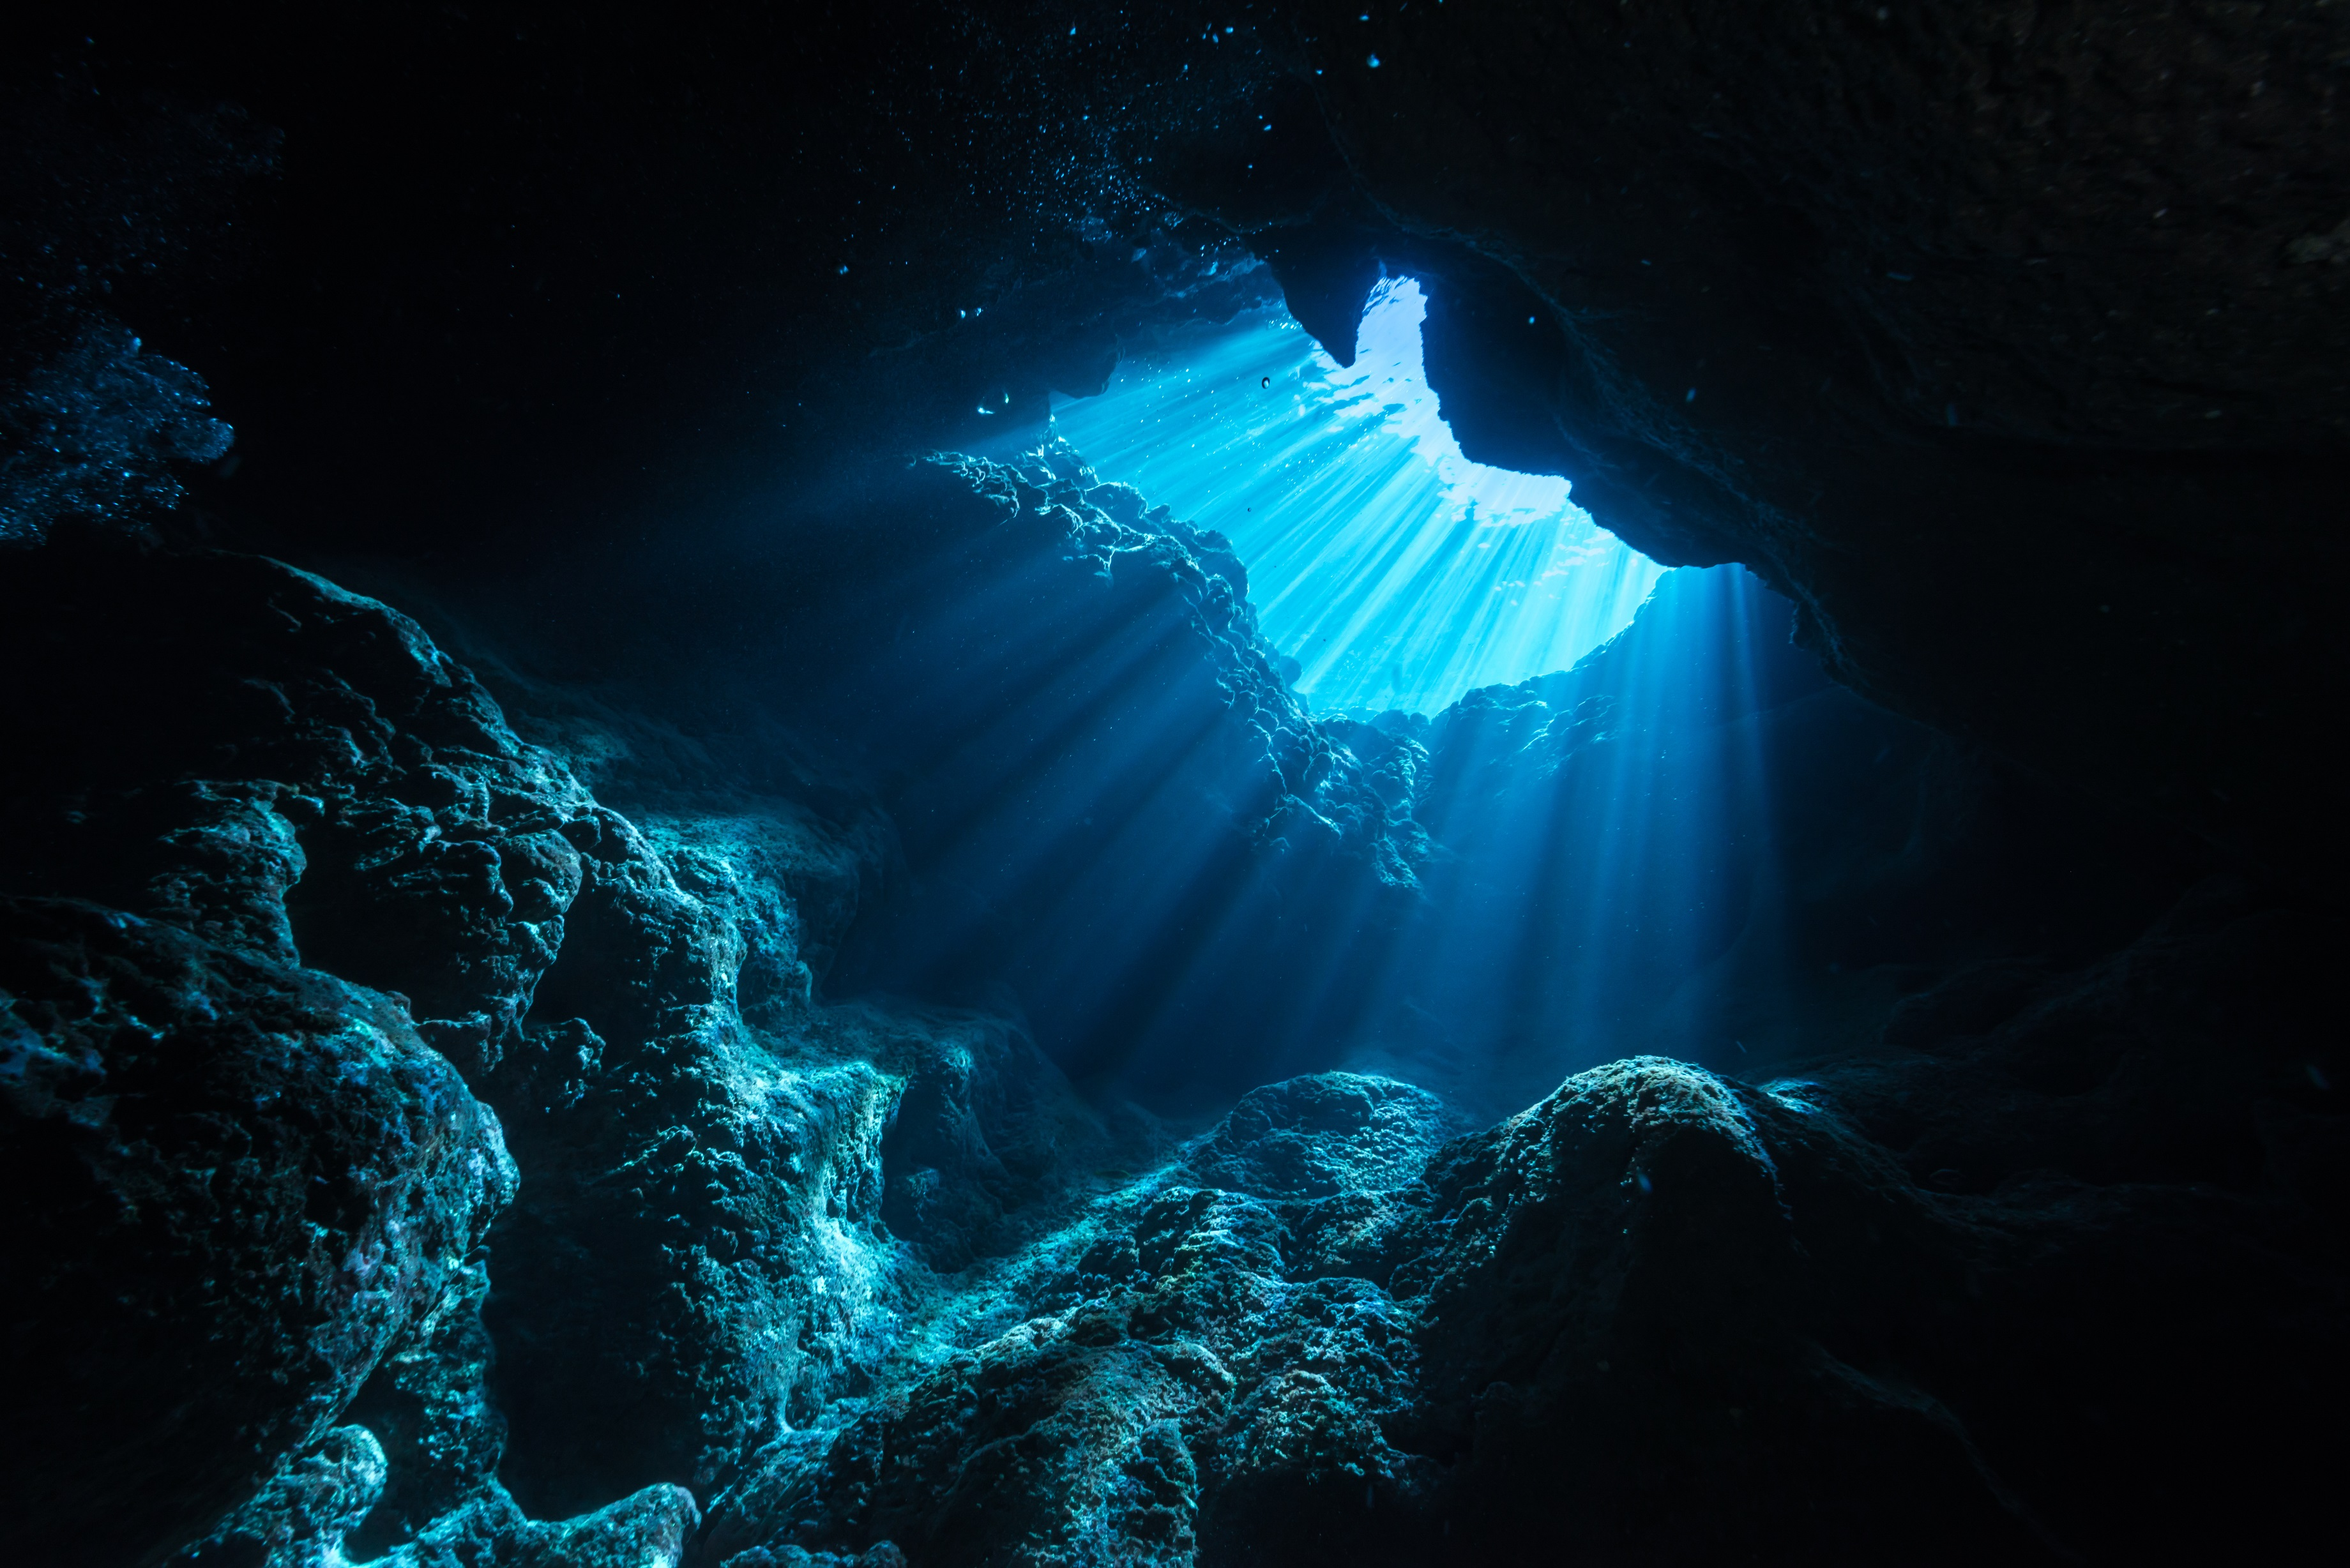 Electricity-Driven Undersea Reactions May have Been Important for the Emergence of Life